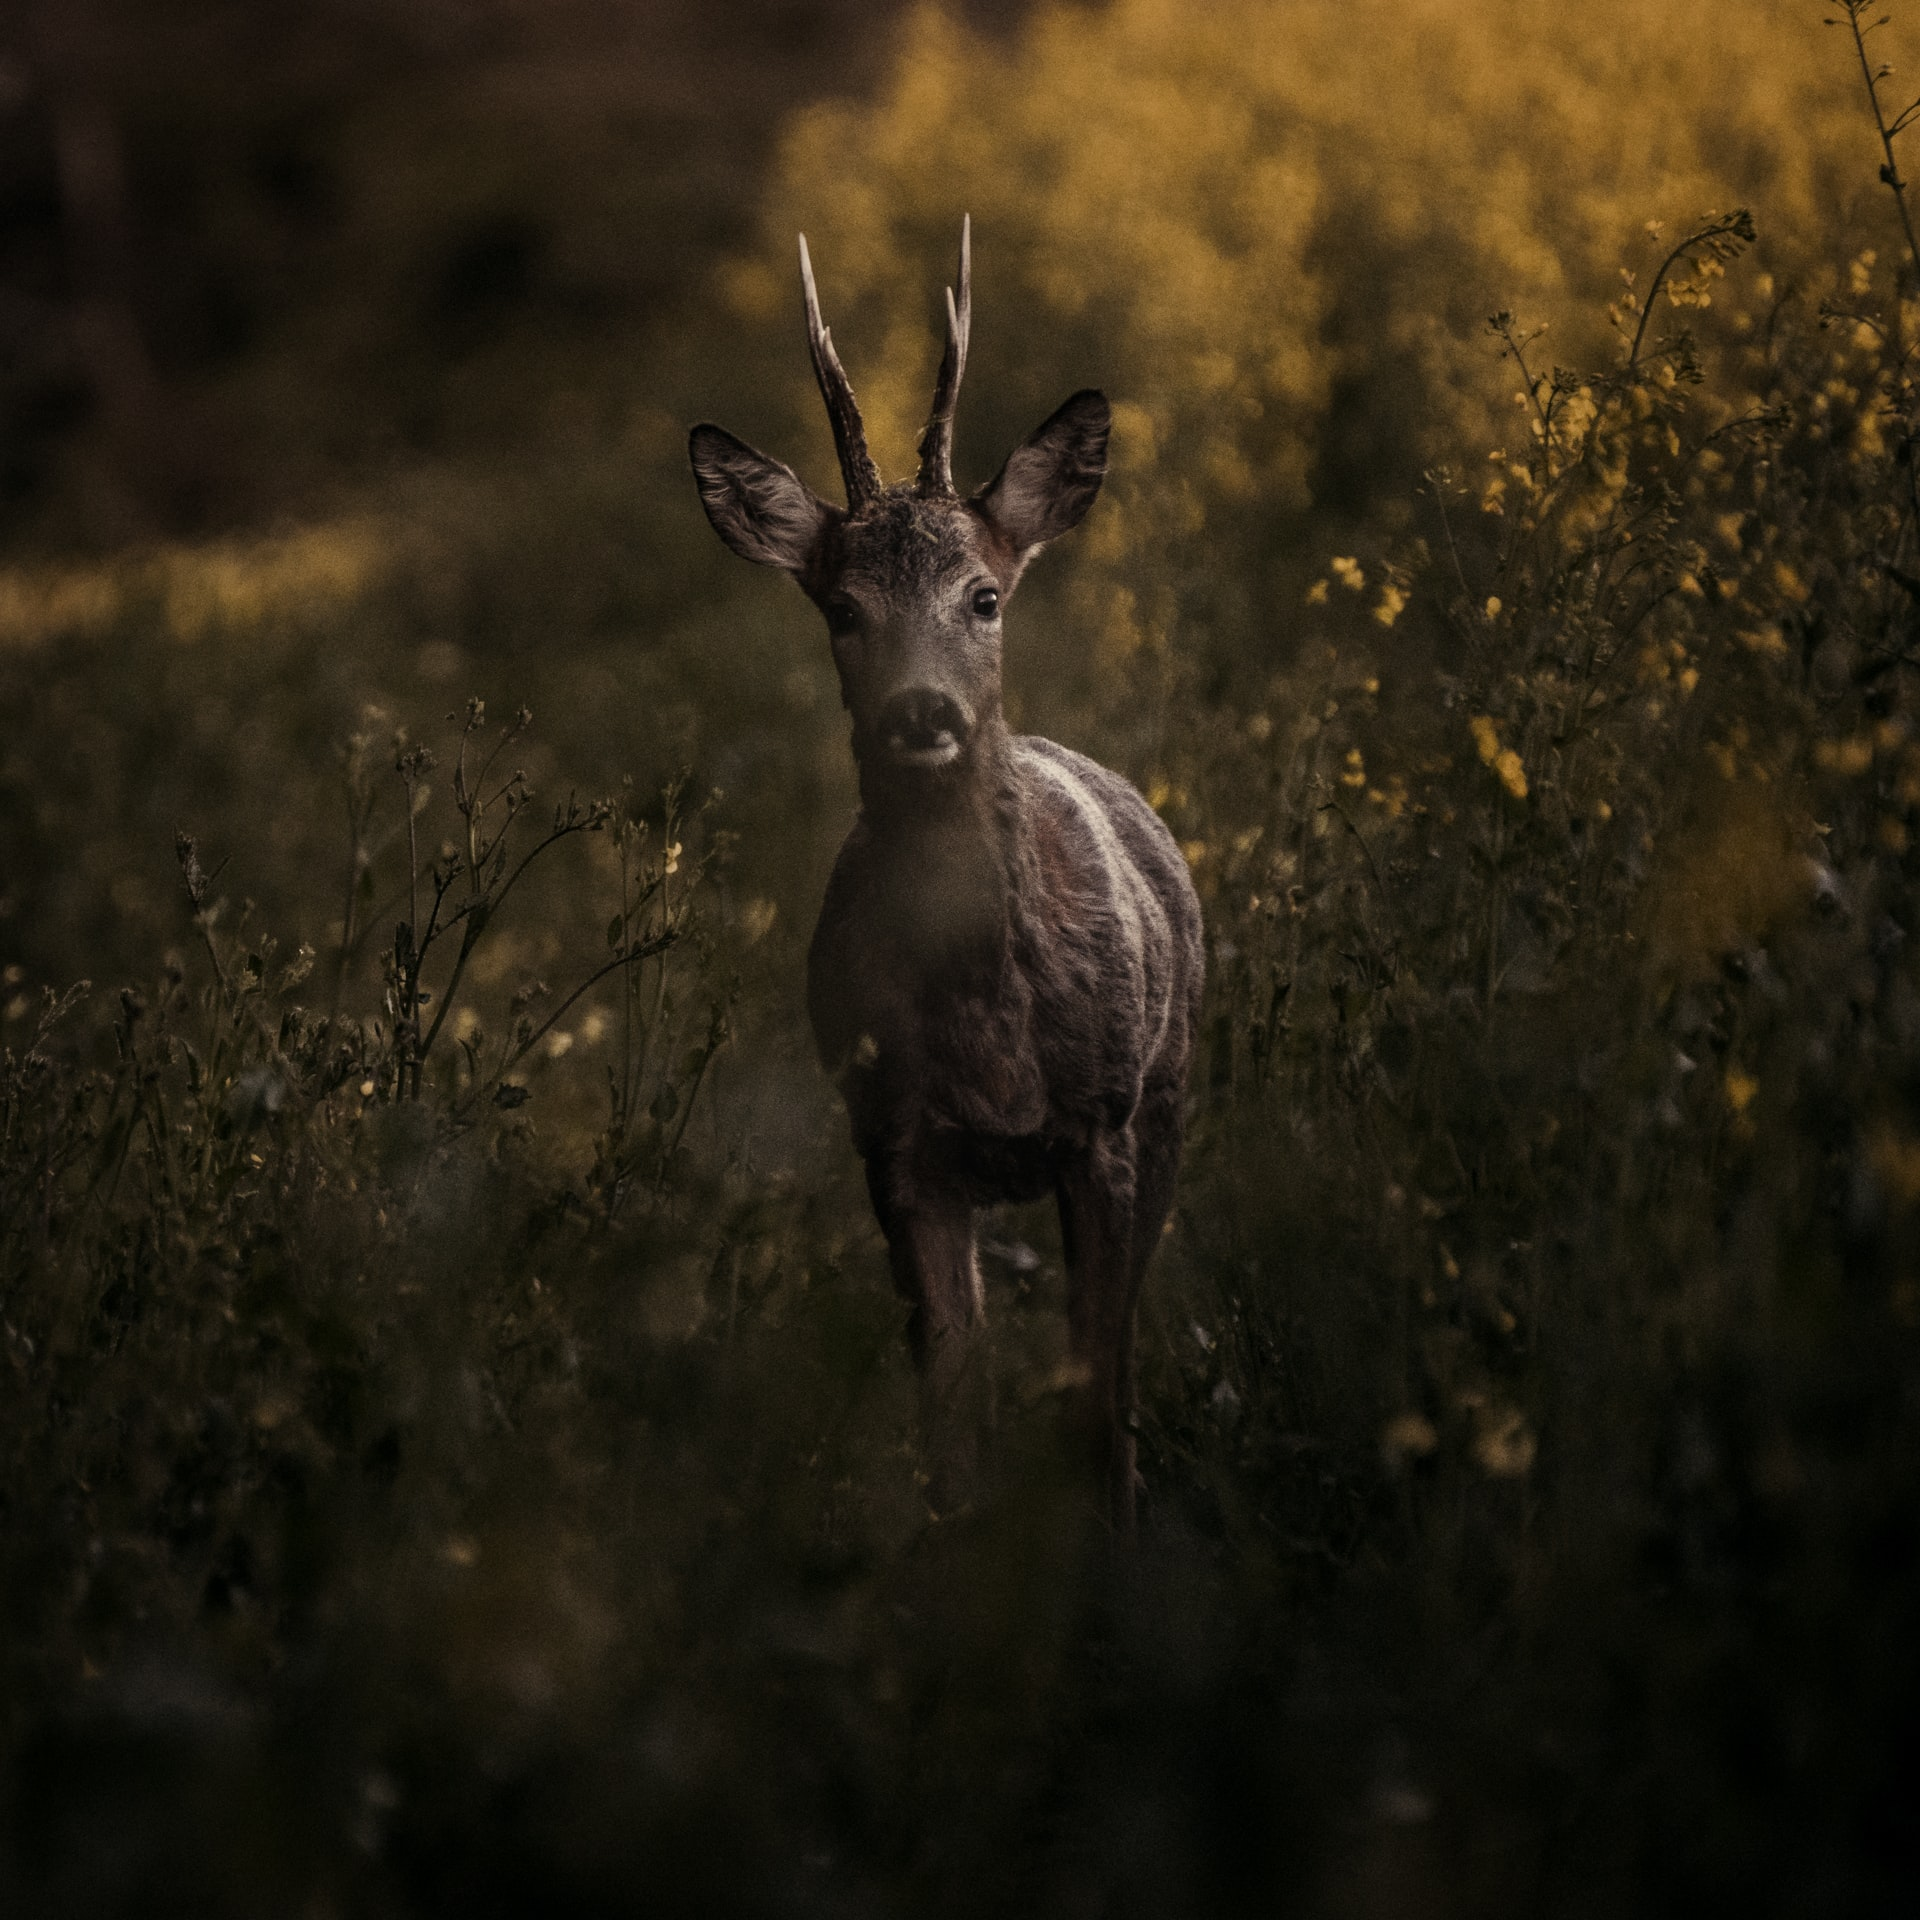 Wild deer stands in a field at dusk